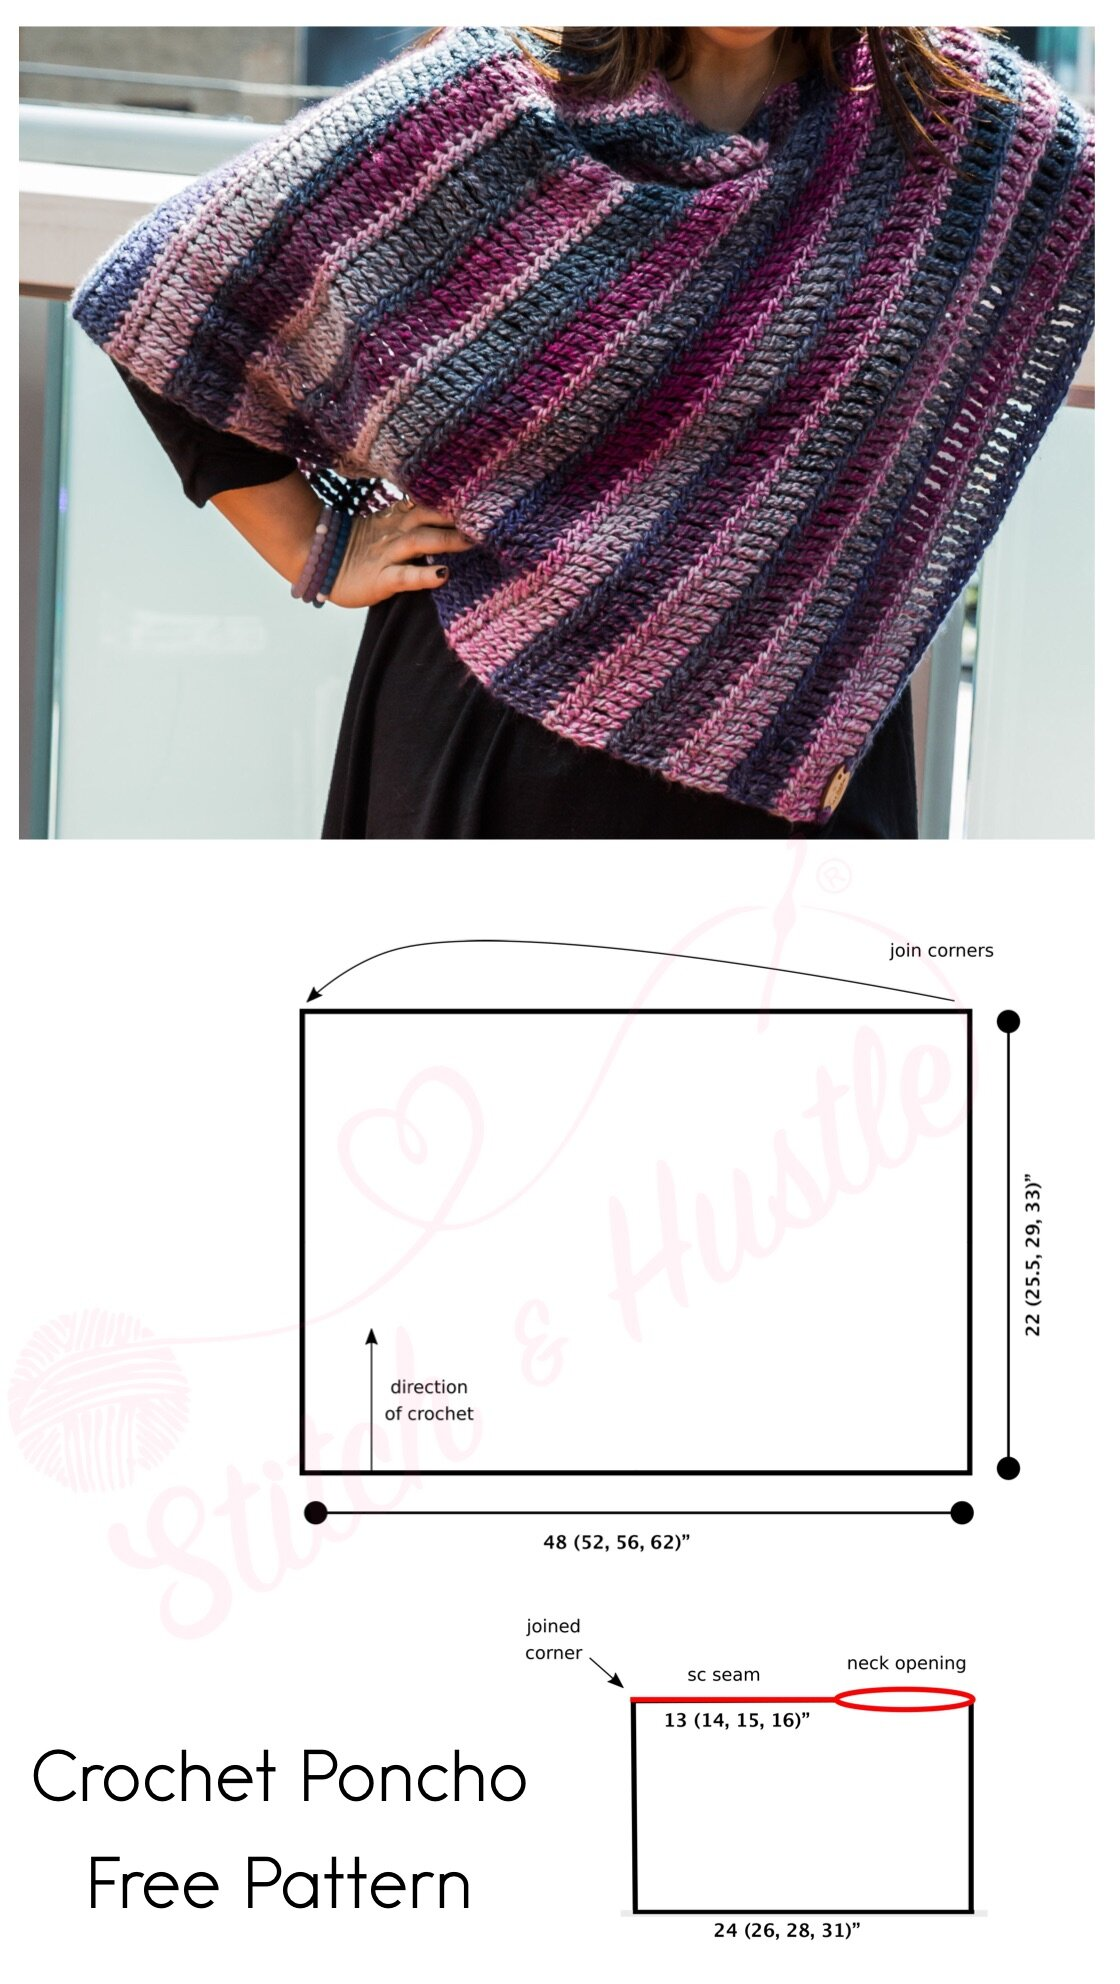 red-heart-colorscape-crochet-poncho-free-pattern-1.jpg